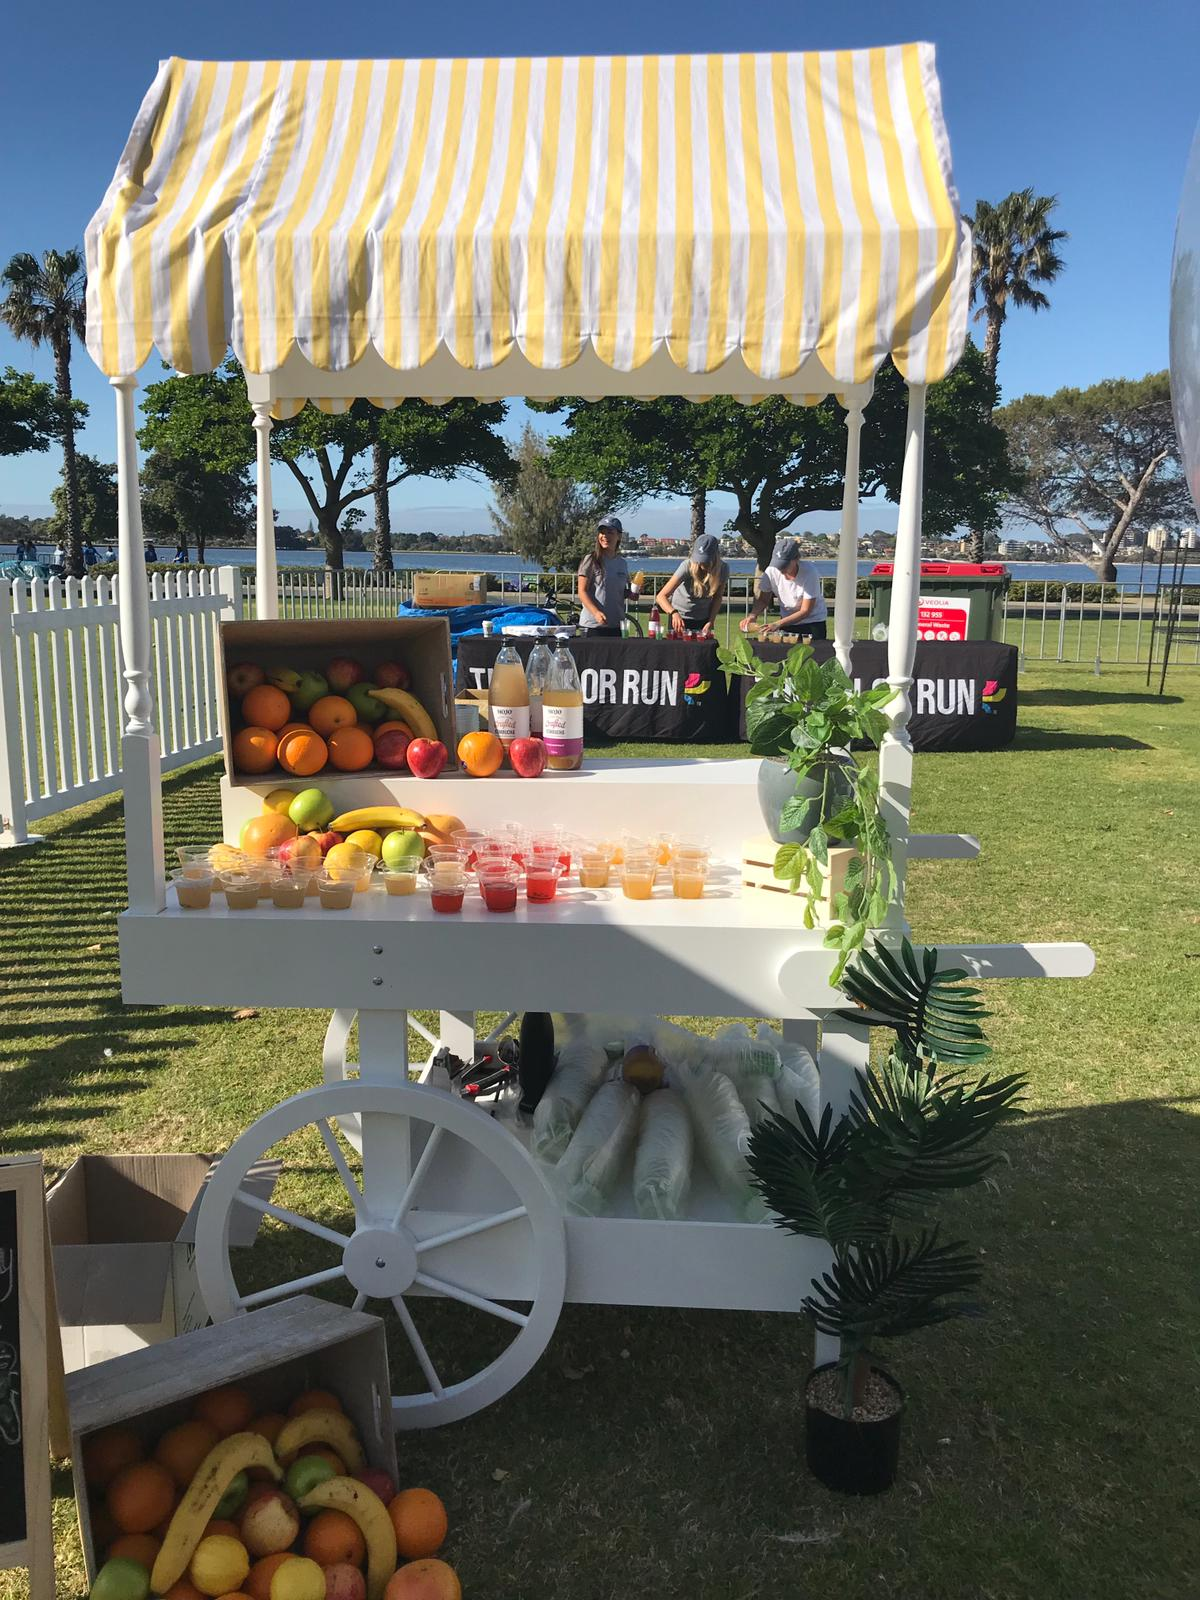 Promotional_Stand_Alternative_Perth_Mojo_Beverages_Little_Lolly_Cart.JPG